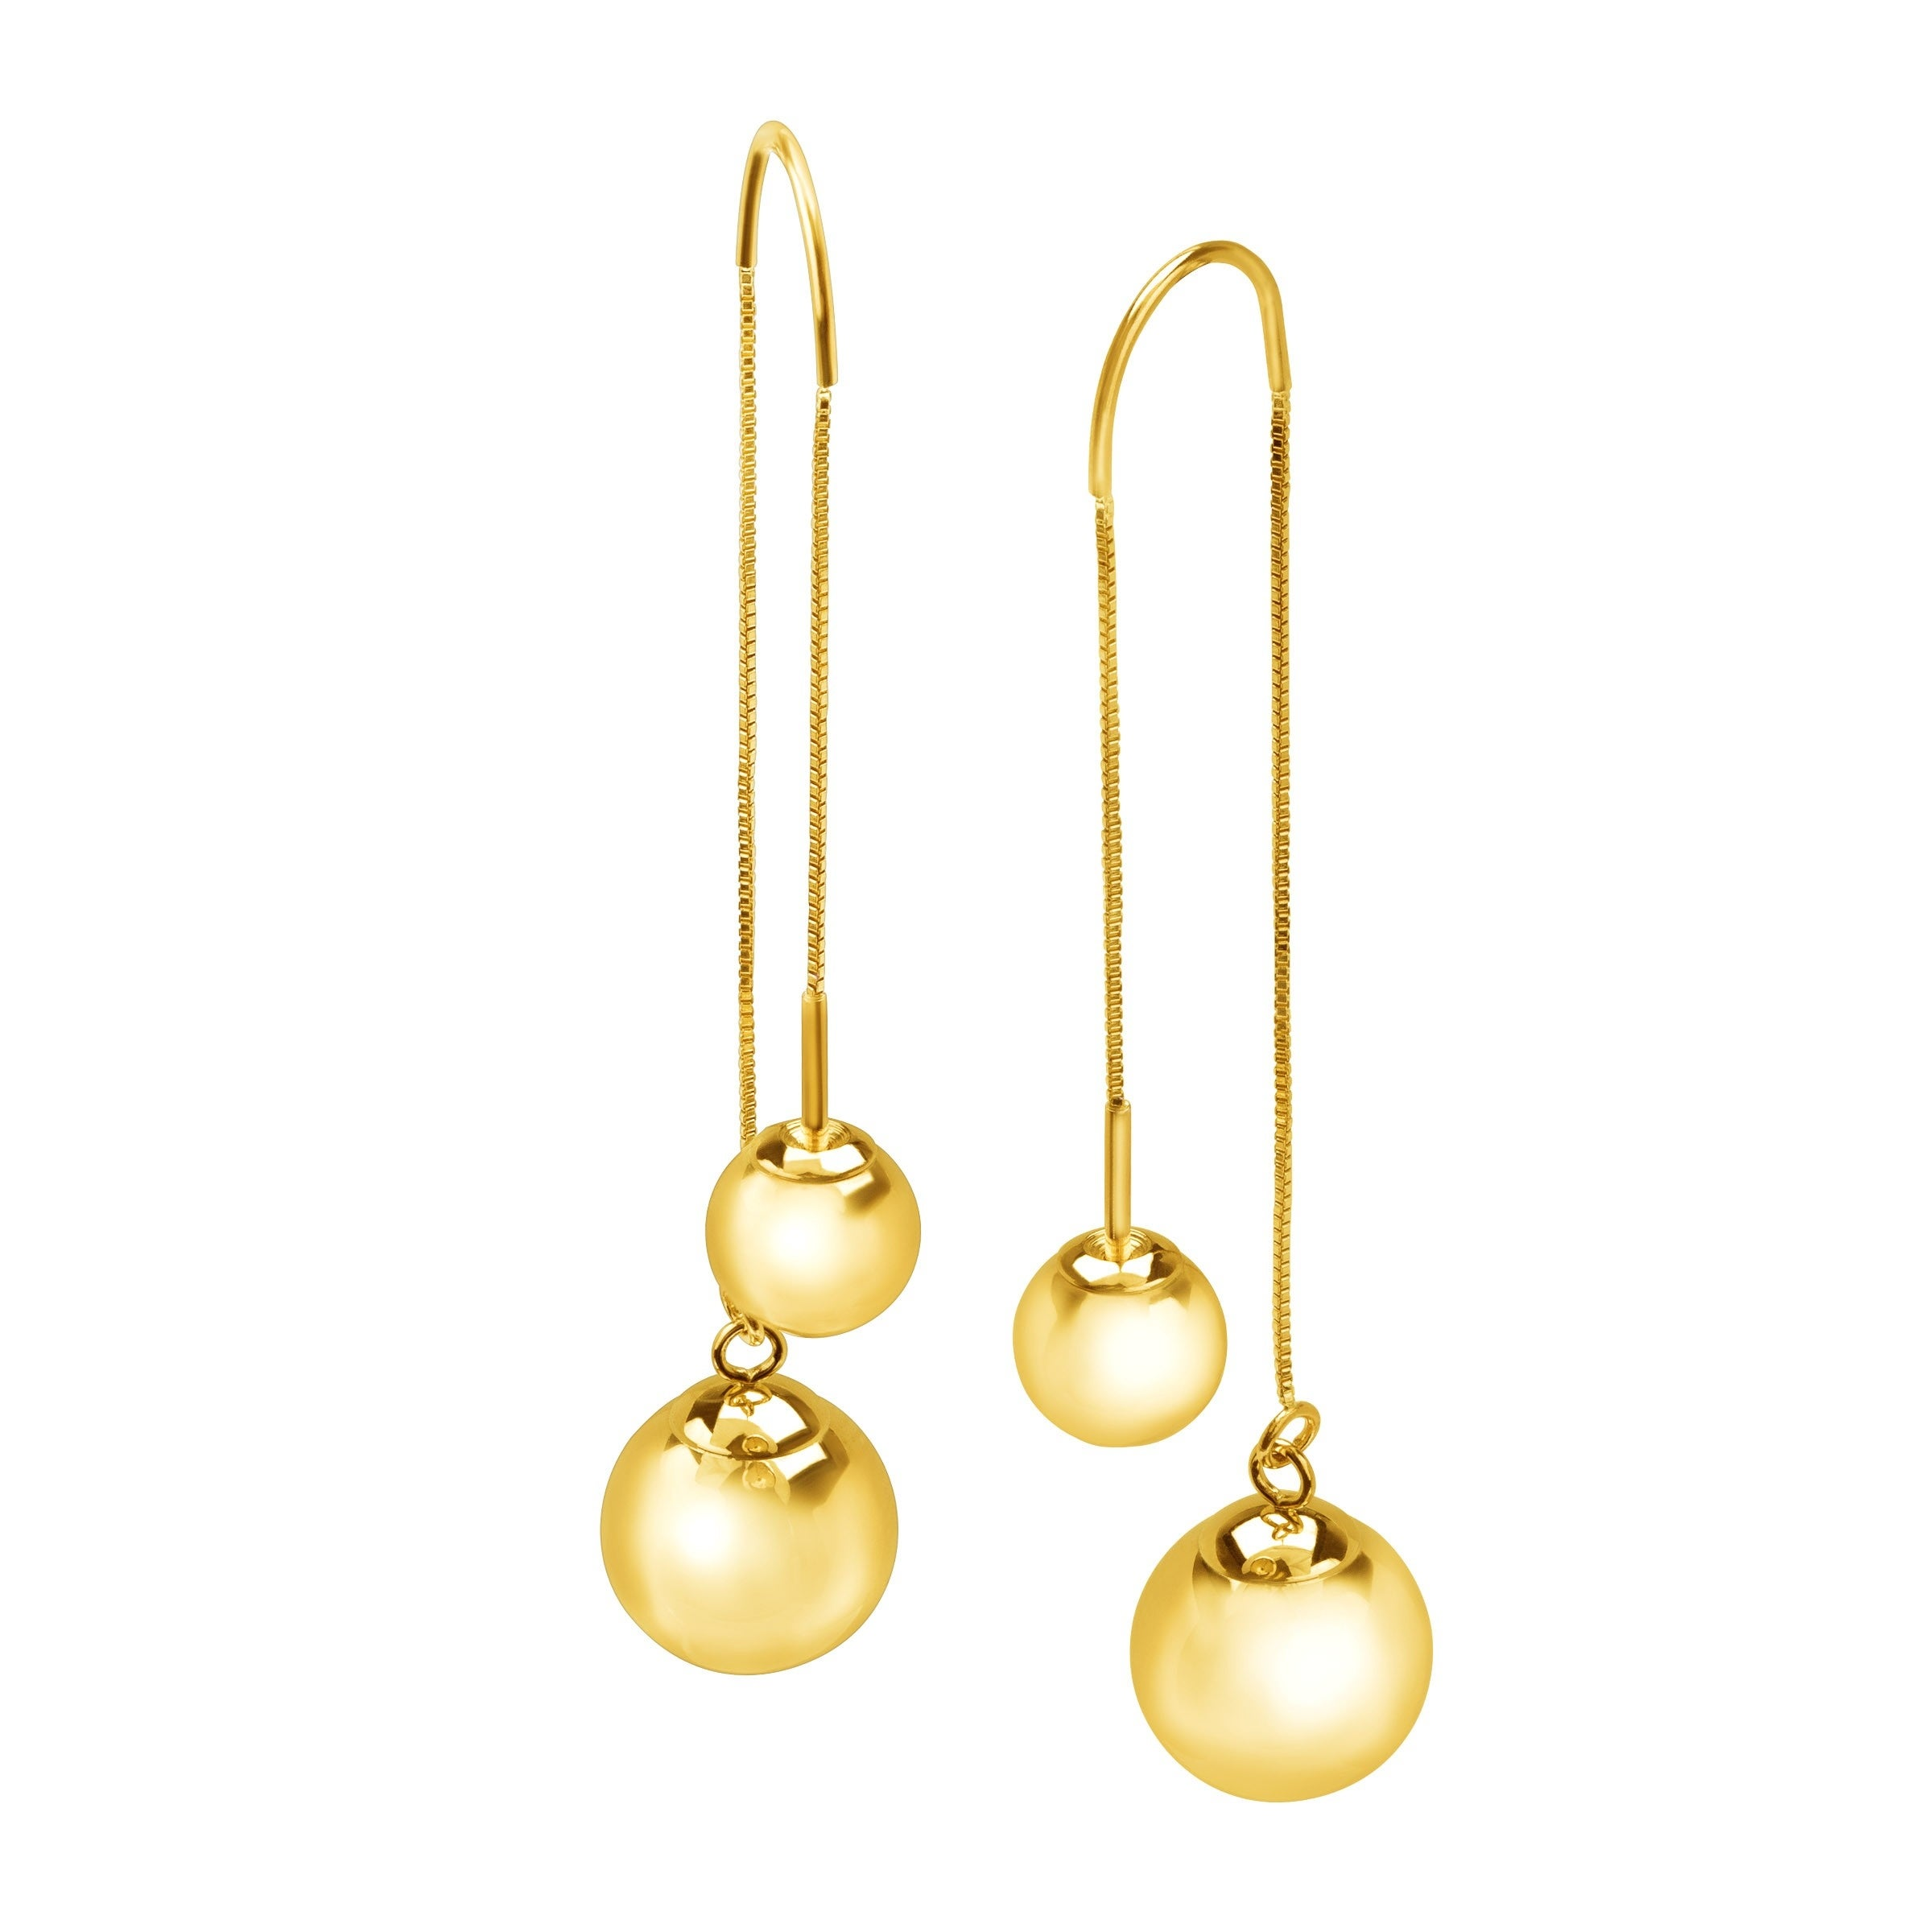 and solvar featured products silver earrings shamrock gold